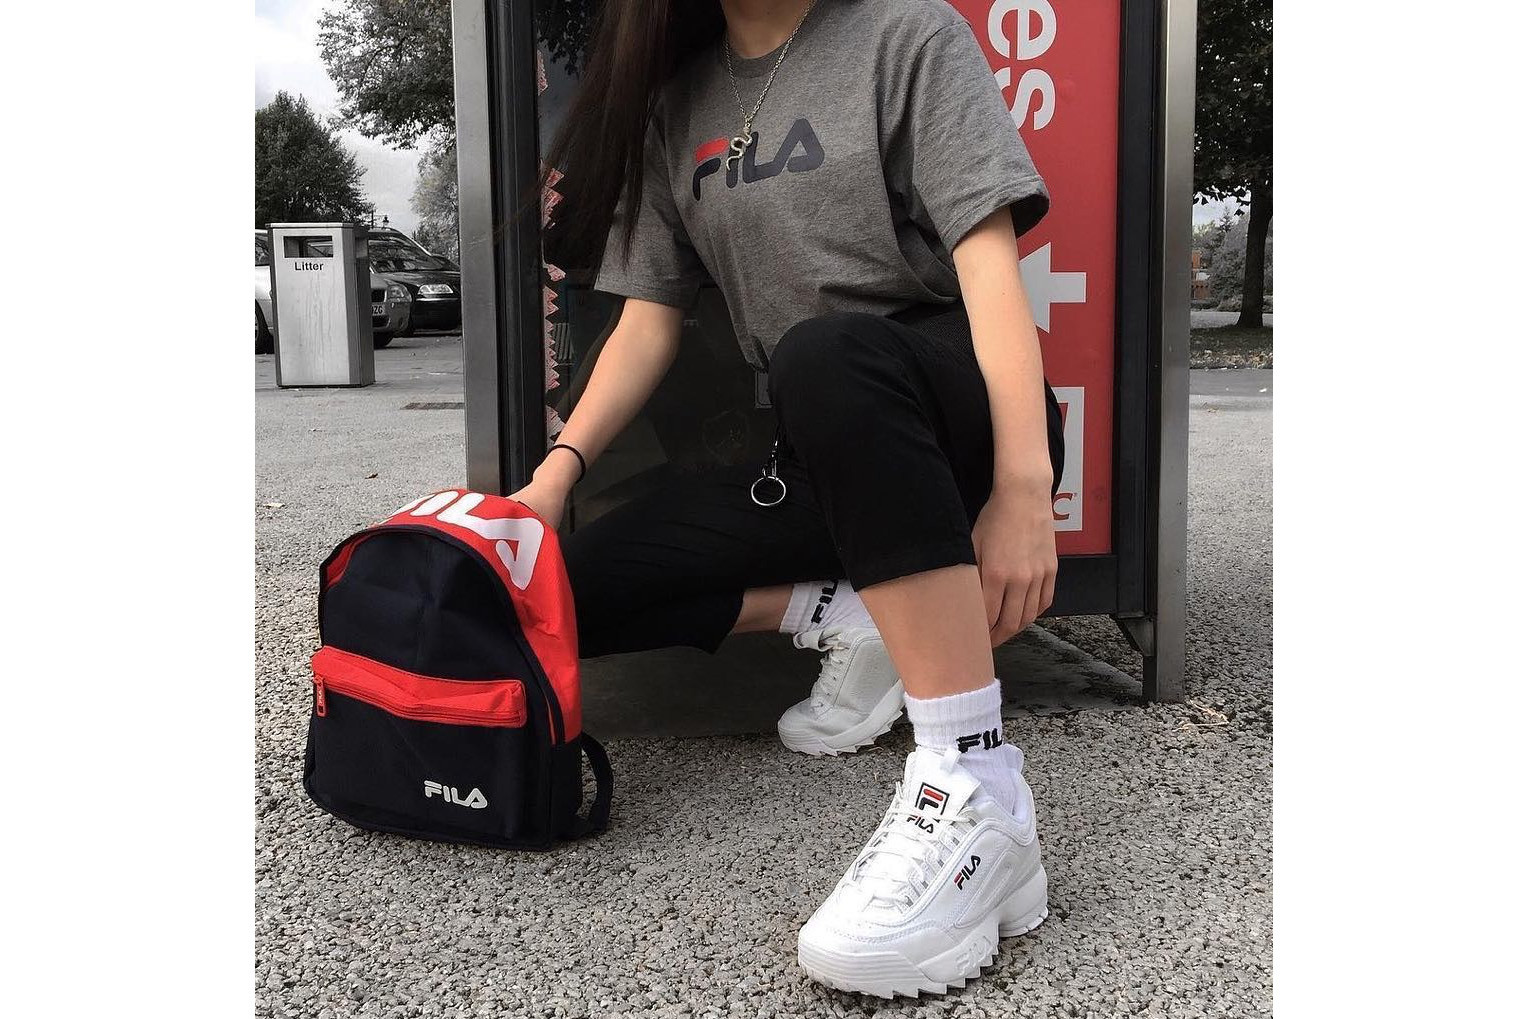 HYPEBAE Look Fila Fashion Outfit Guide Sporty Look Inspiration Get the Look  How to Style Retro